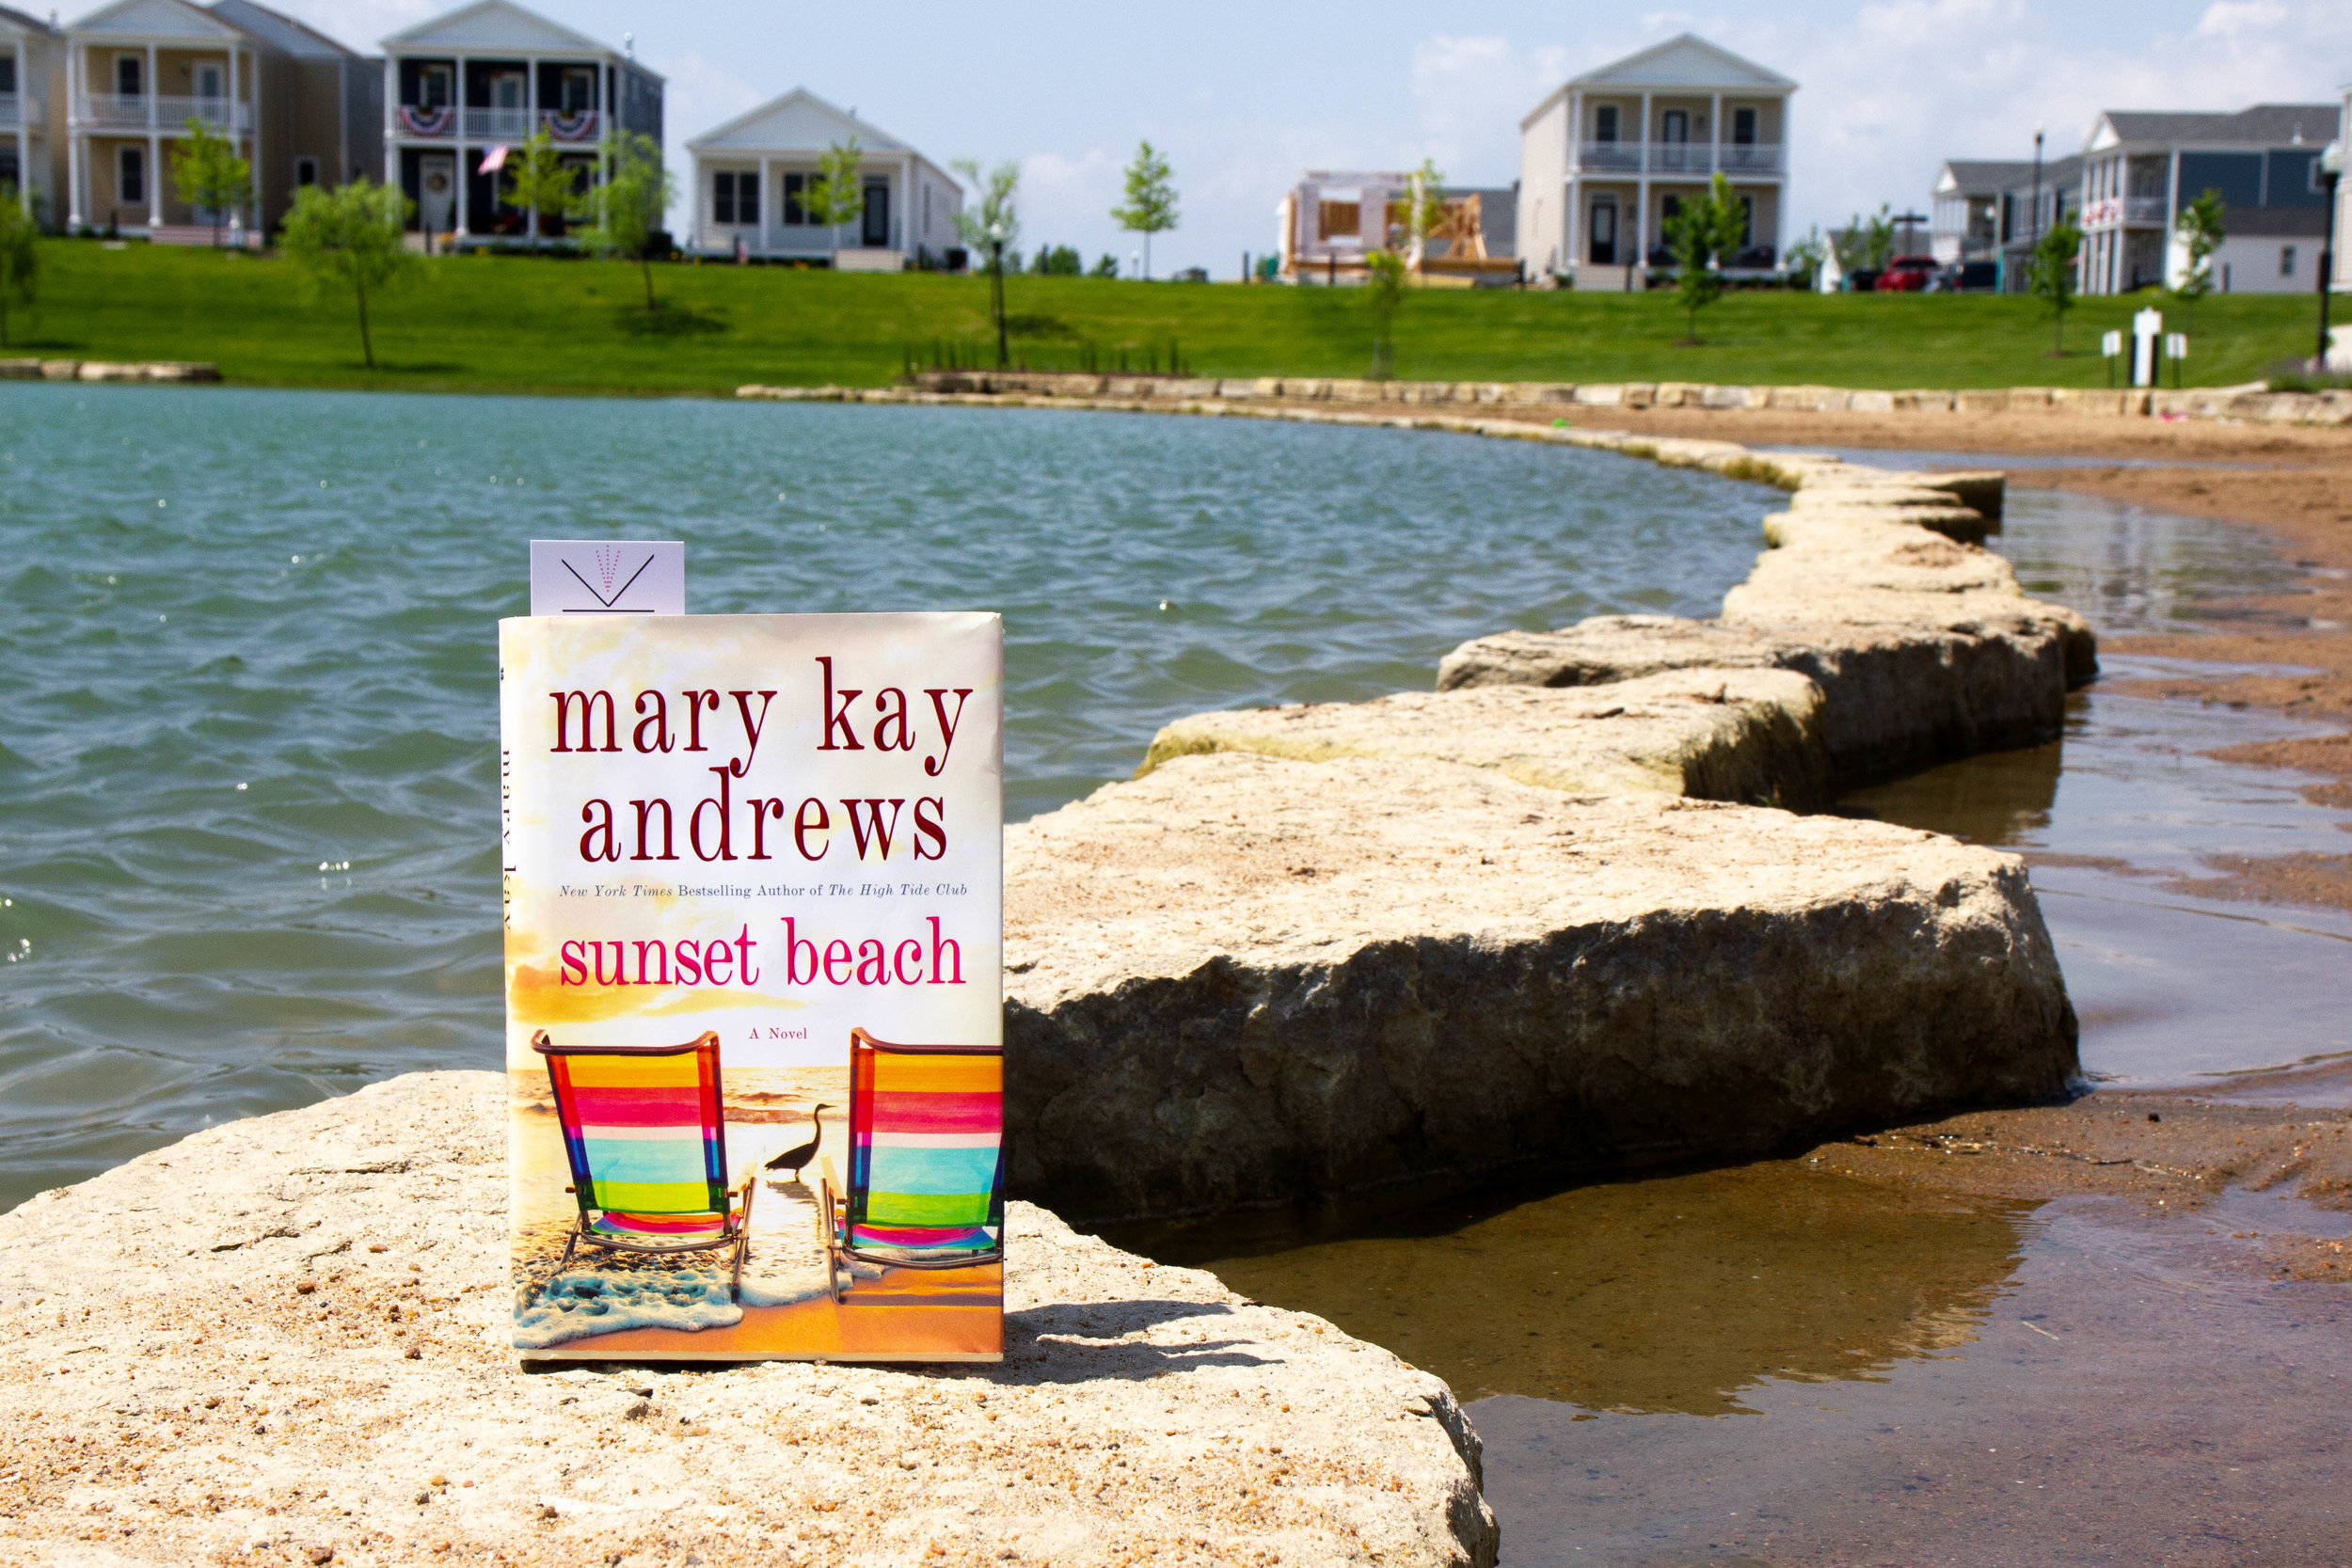 Reading Sunset Beach by Mary Kay Andrews at the beach at New Town in St. Charles, MO